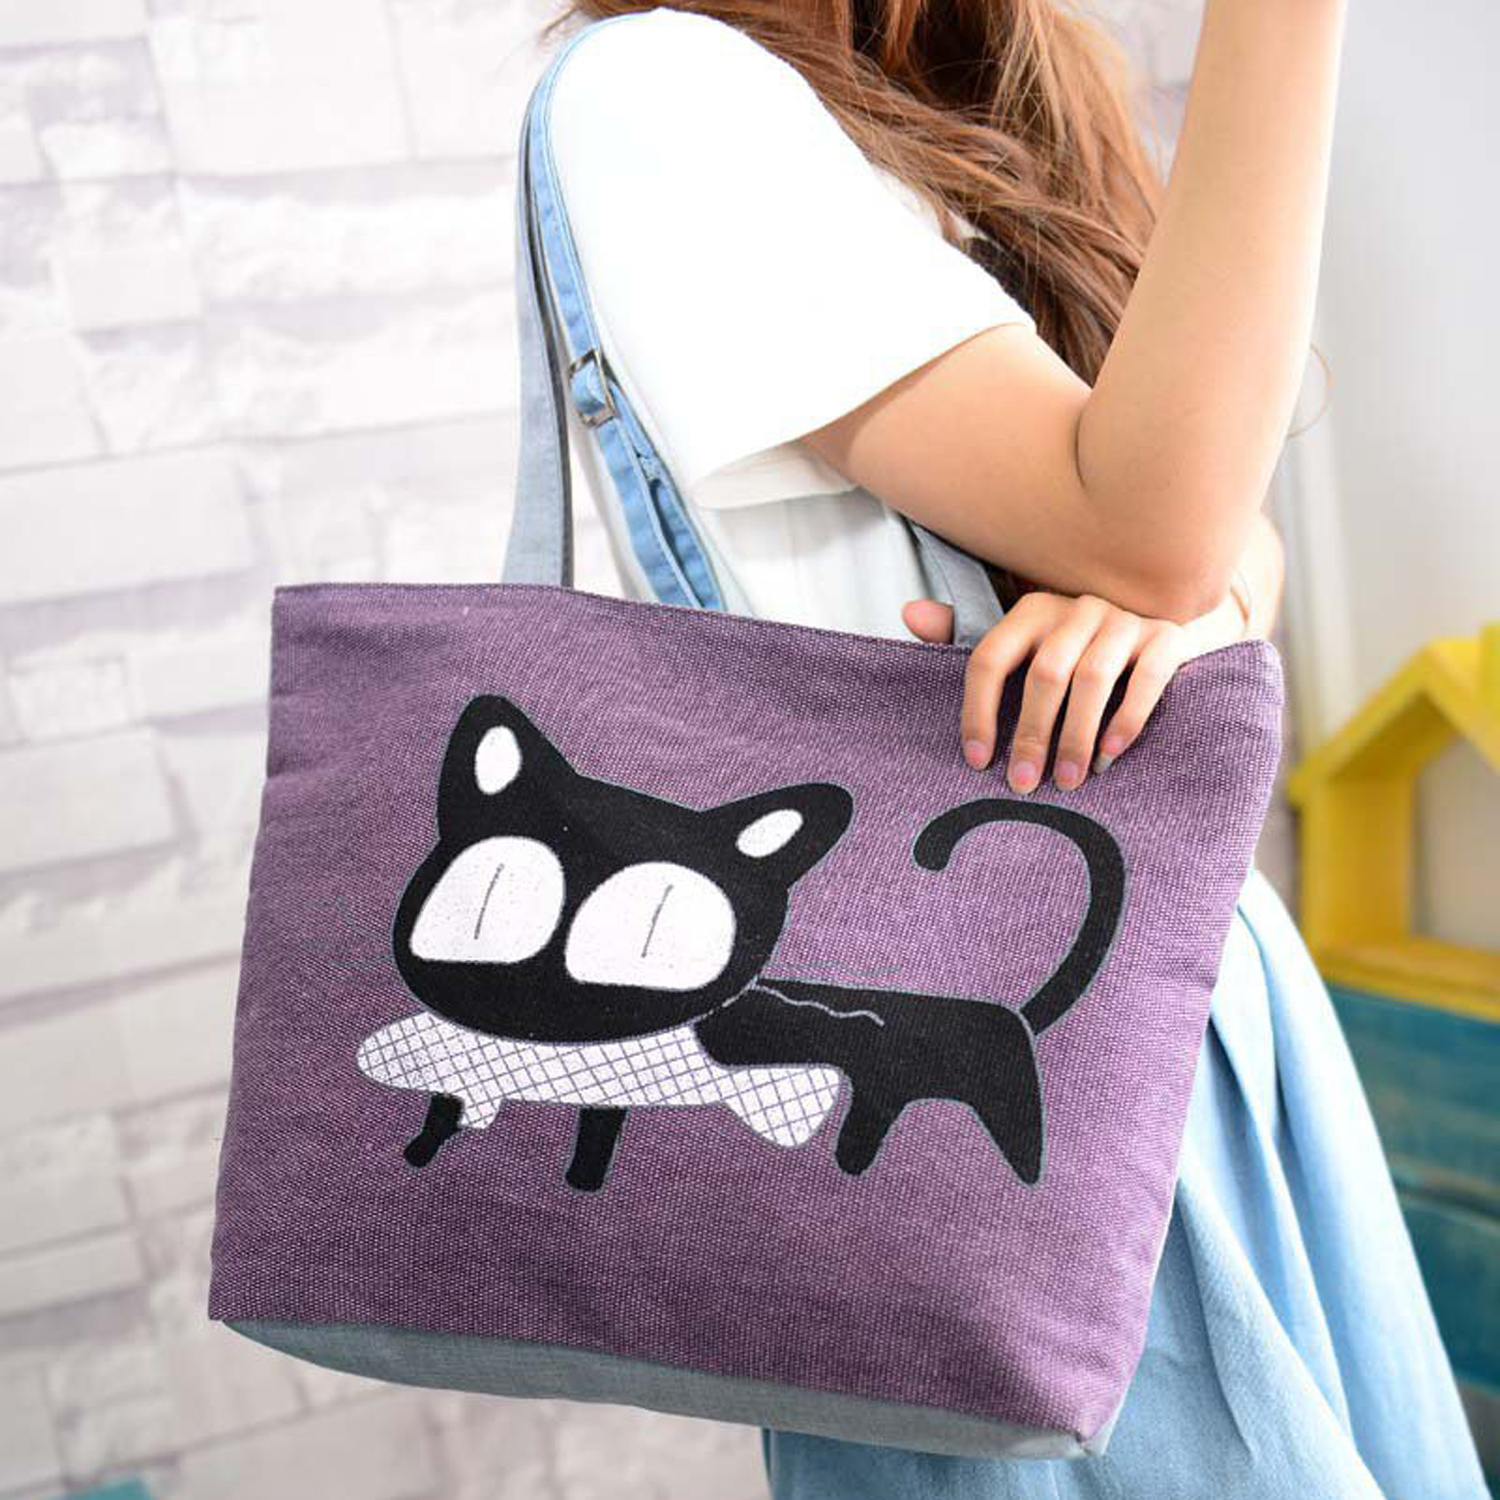 Special Cartoon Cat Fish Canvas Handbag Preppy School Bag for Girls Women's Handbags Shopping bag Cute Shoulder Tote Handbags japanese pouch small hand carry green canvas heat preservation lunch box bag for men and women shopping mama bag